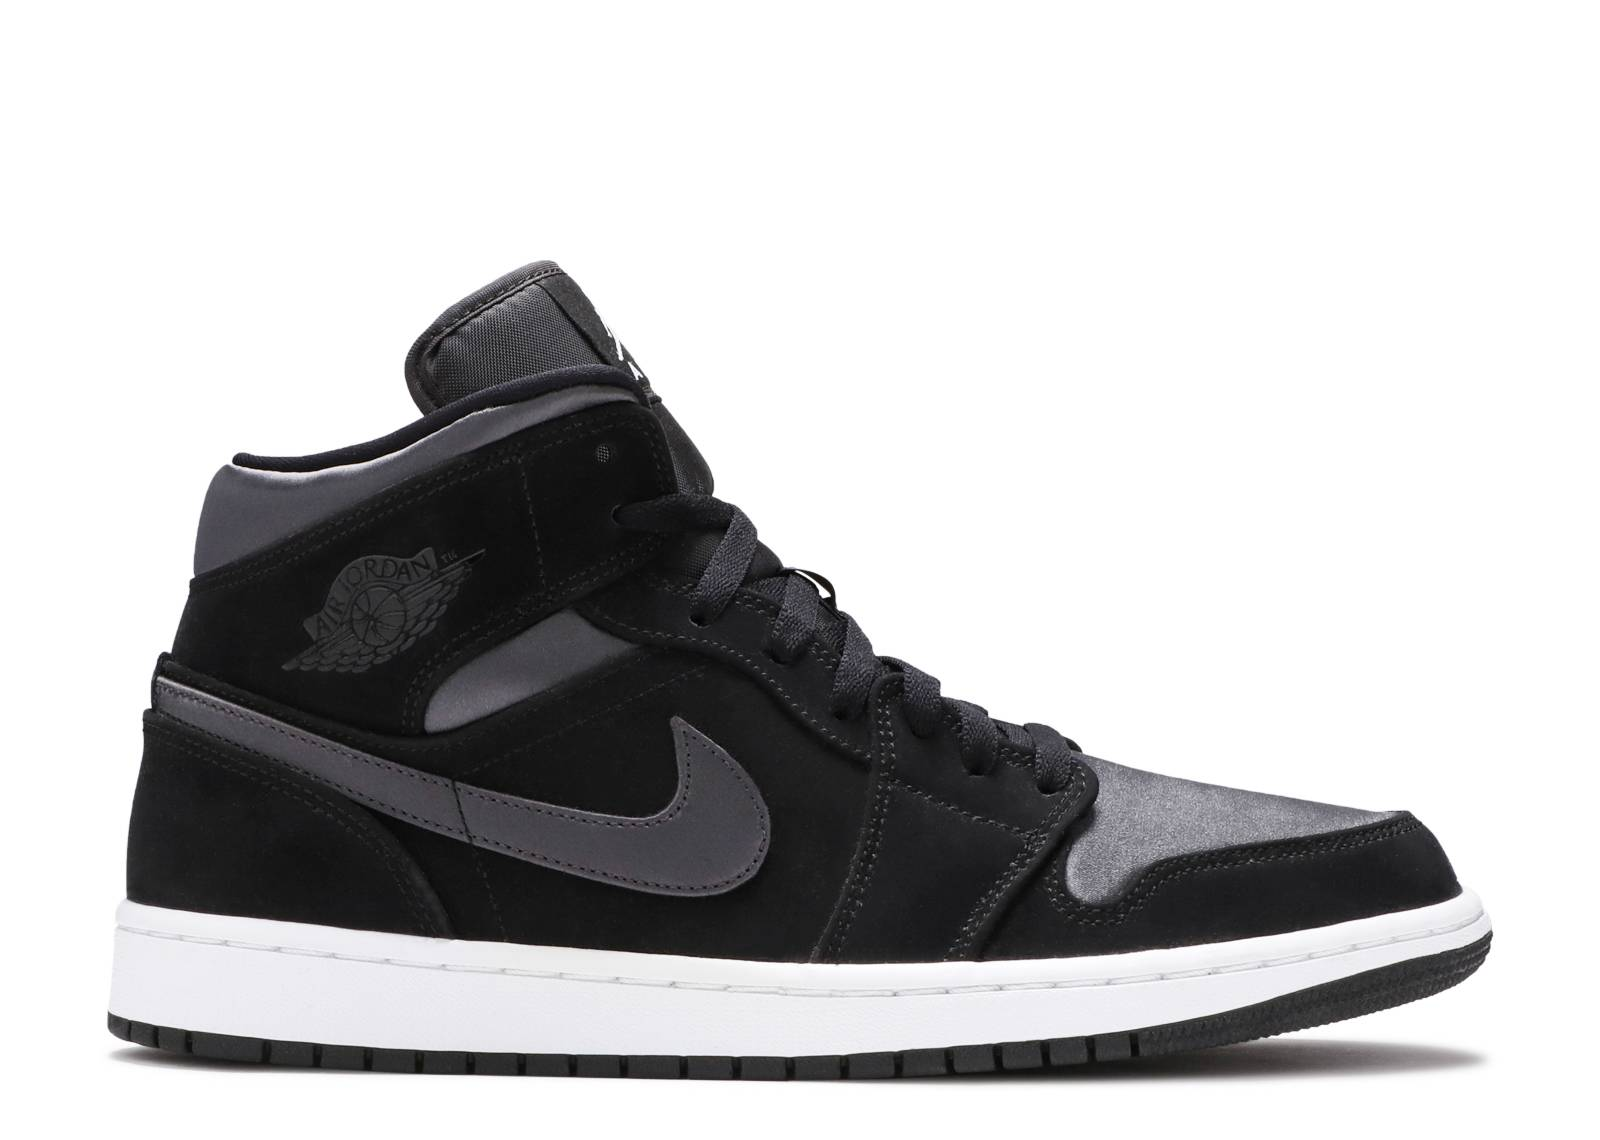 Assumere A rischio Non complicato  Air Jordan 1 Mid SE Nylon 'Black Grey' - Air Jordan - 852542 012 - black/ grey | Flight Club